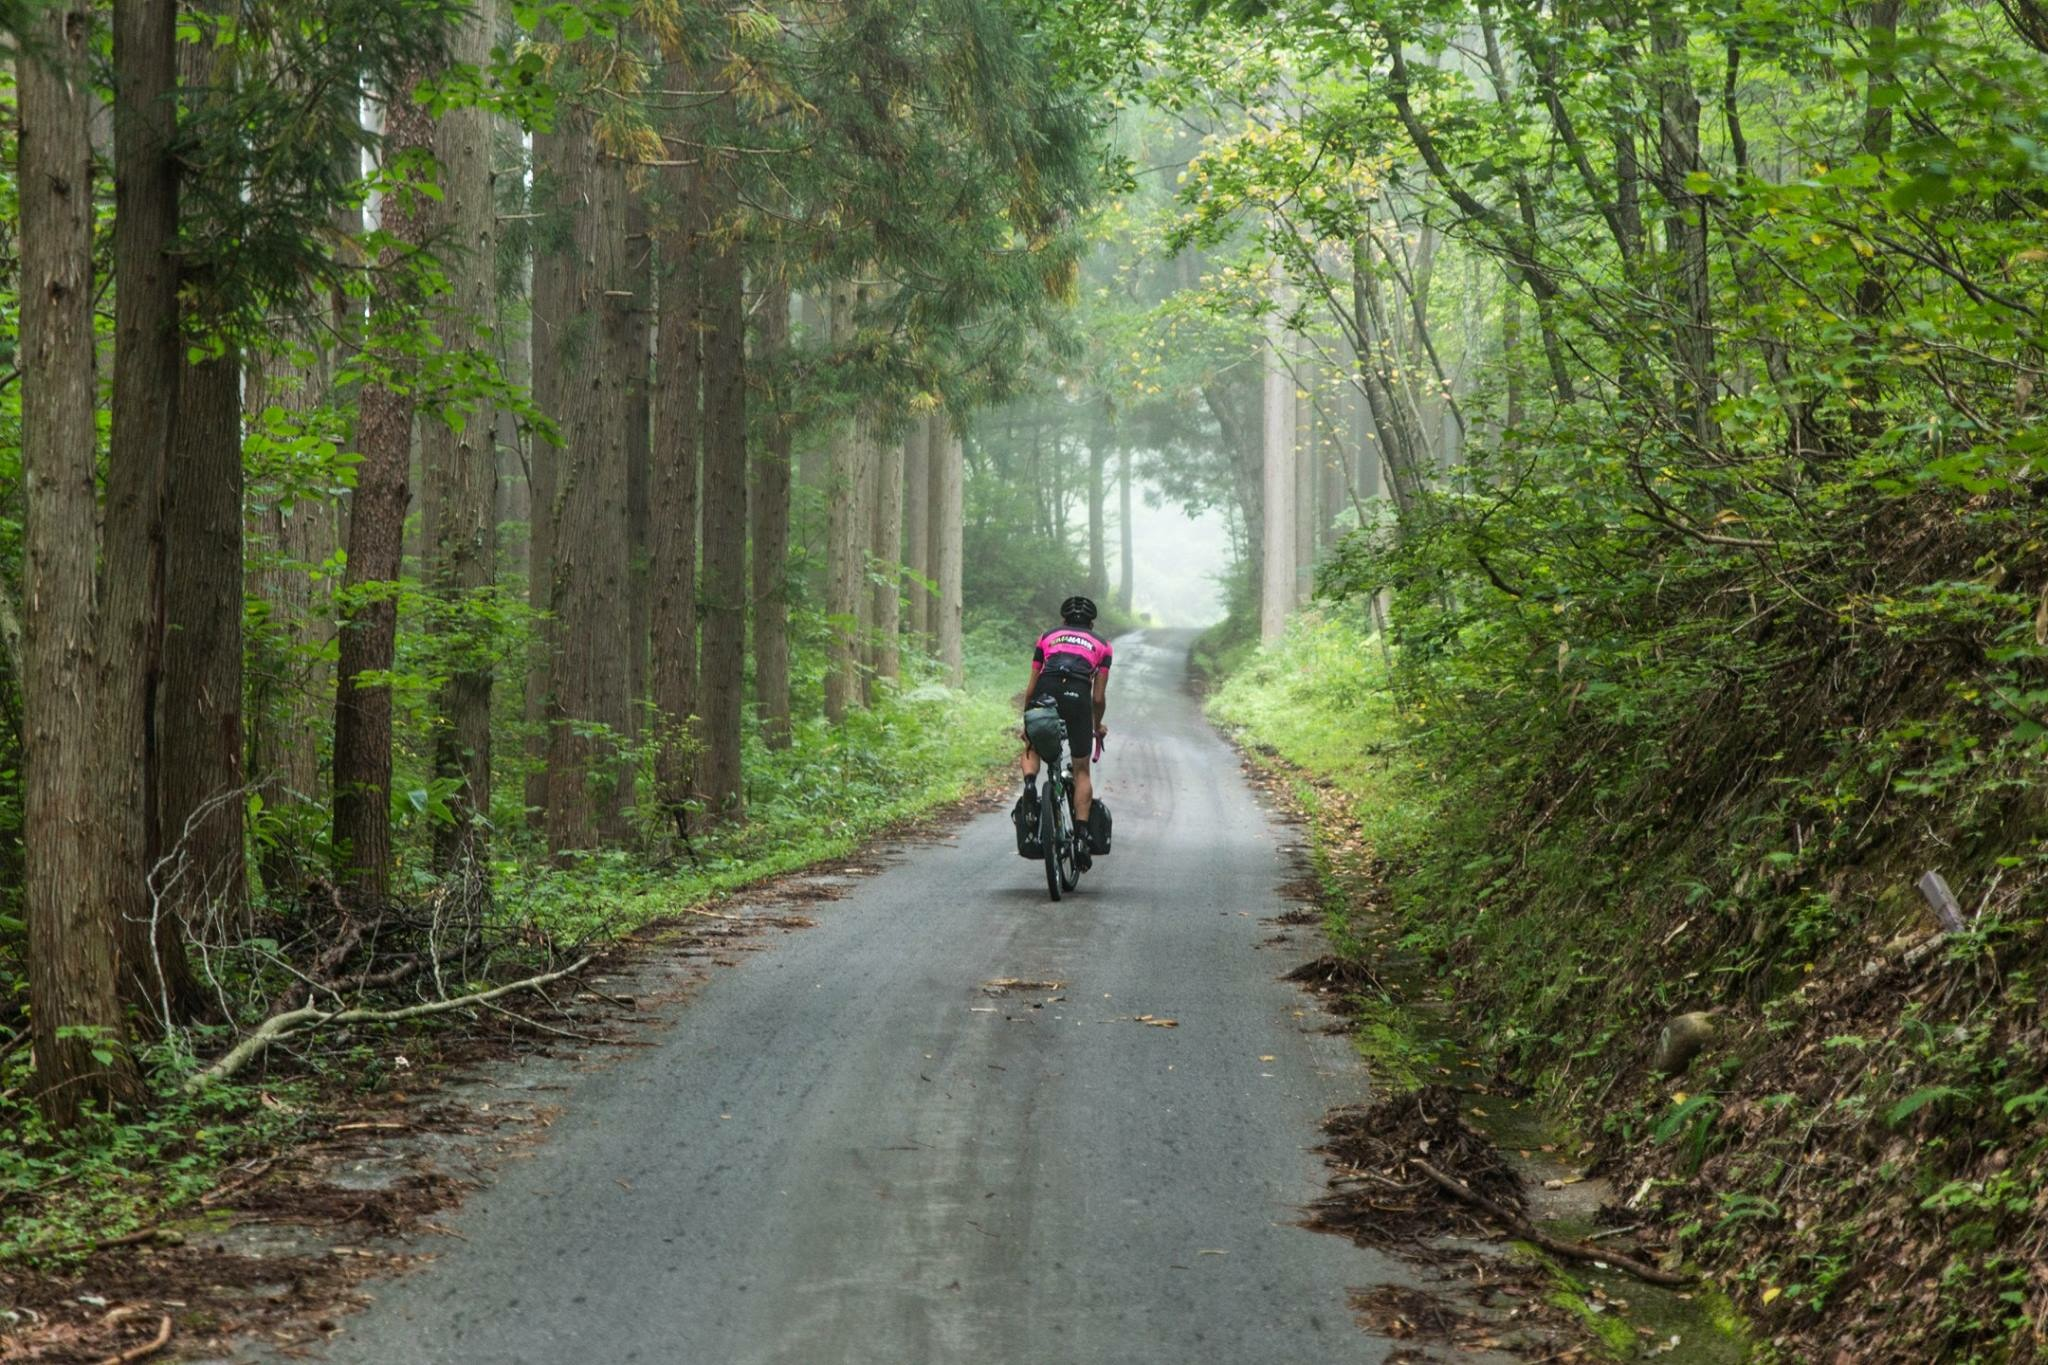 The Japanese Odyssey gives you plenty of opportunities to explore the stunning Japanese landscape